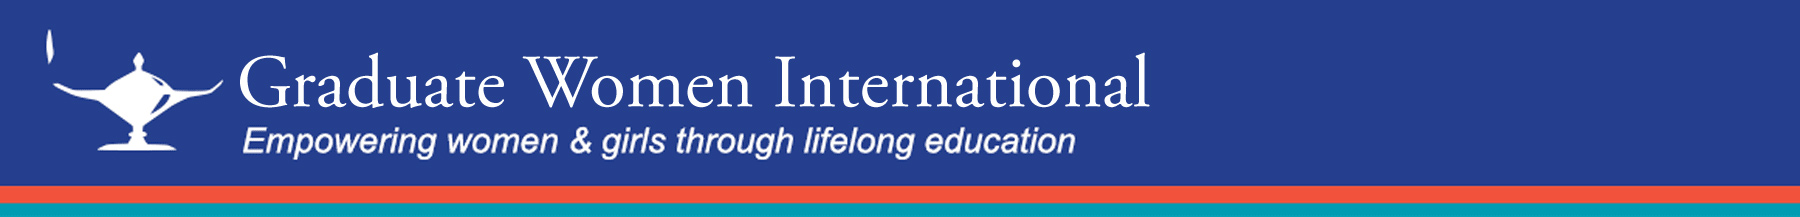 Graduate Women International (GWI)